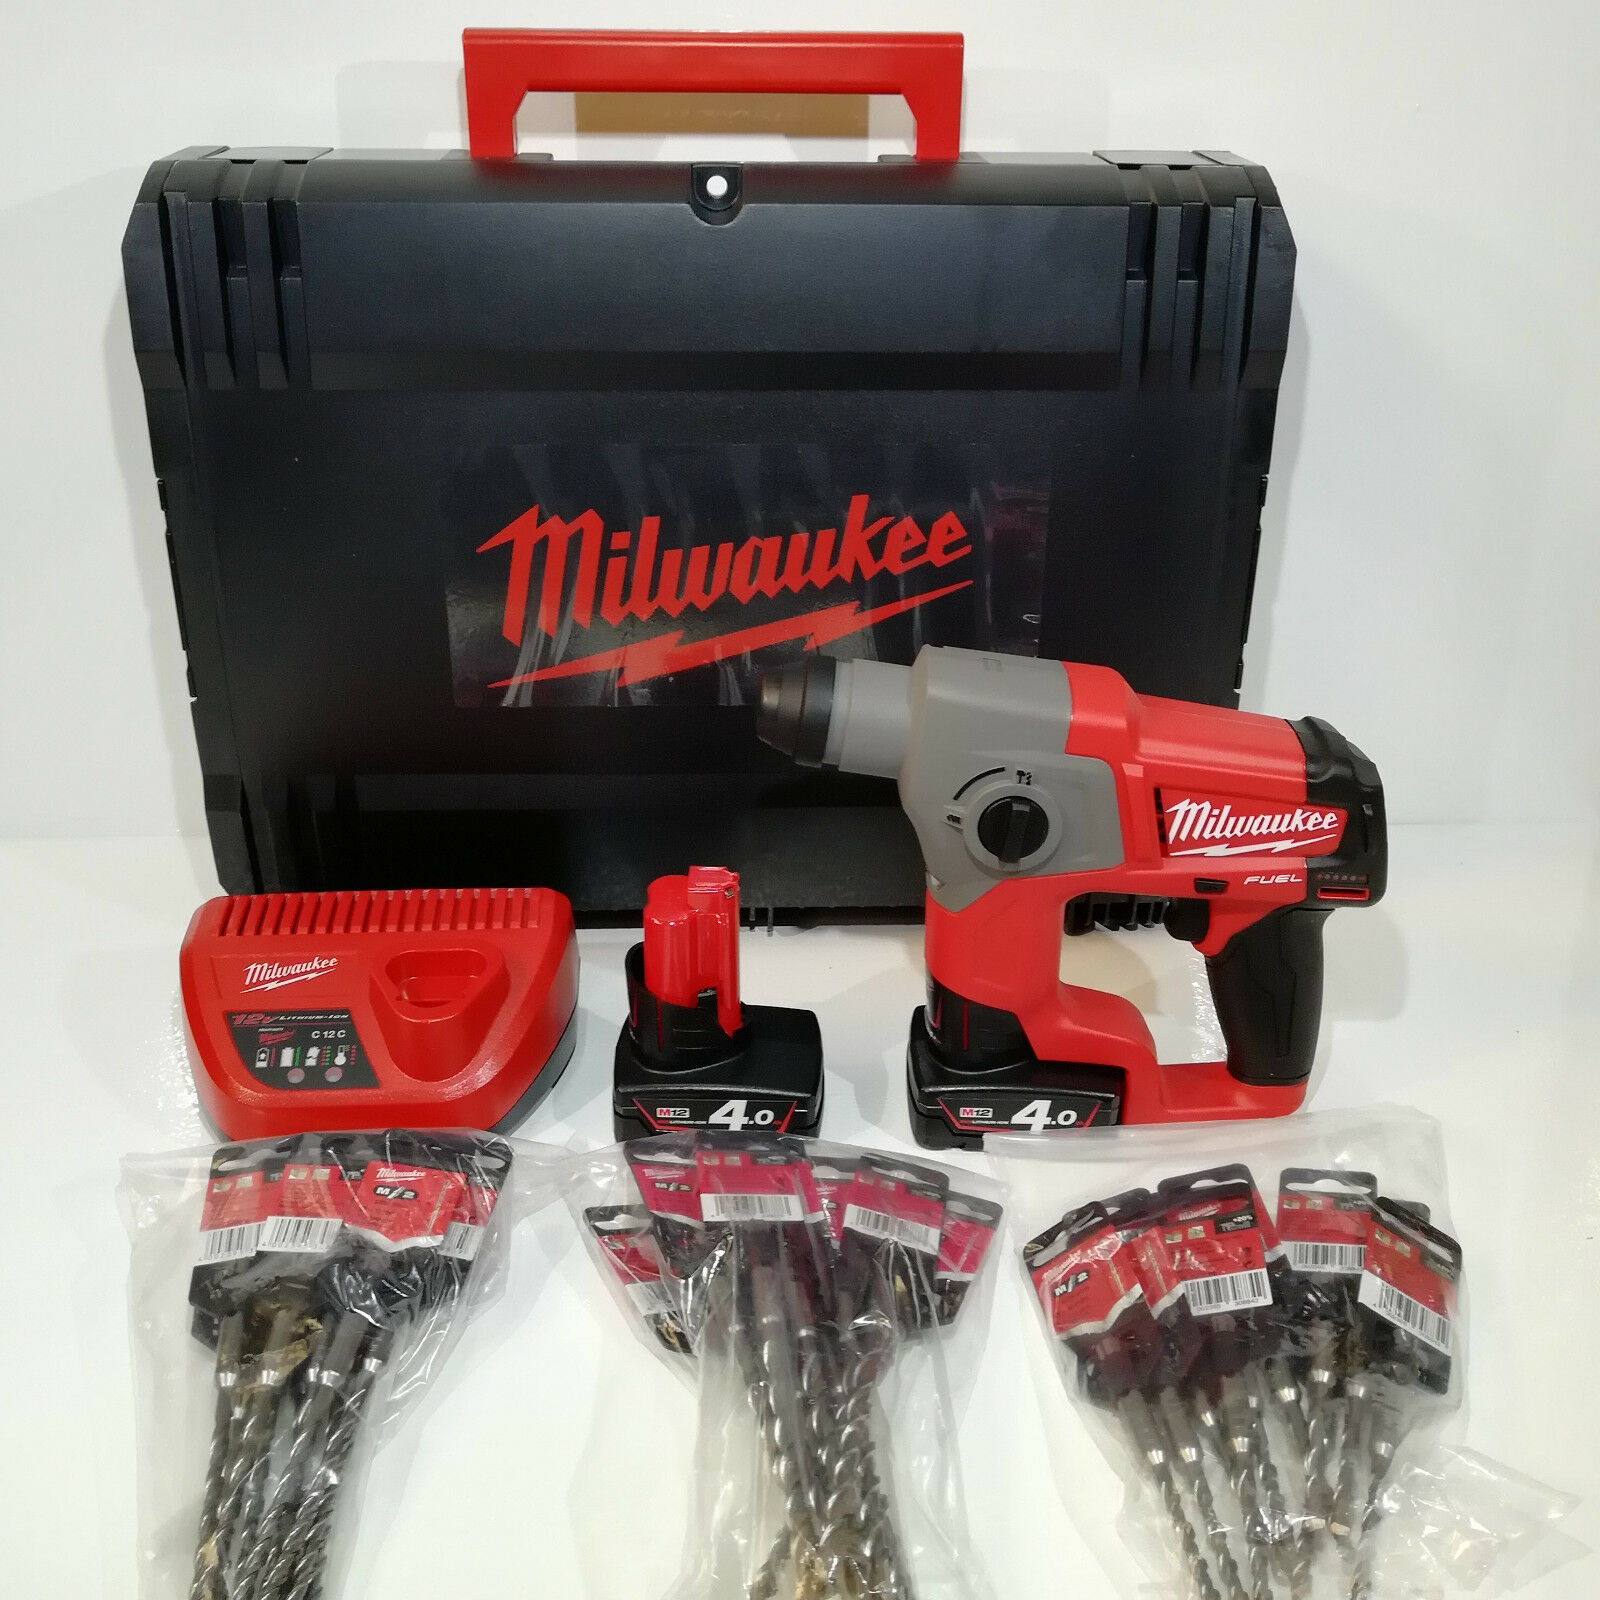 Milwaukee SDS-Plus Paket M12 CH-402X Akku-Bohrhammer + 30x SDS-Plus Hammerbohrer